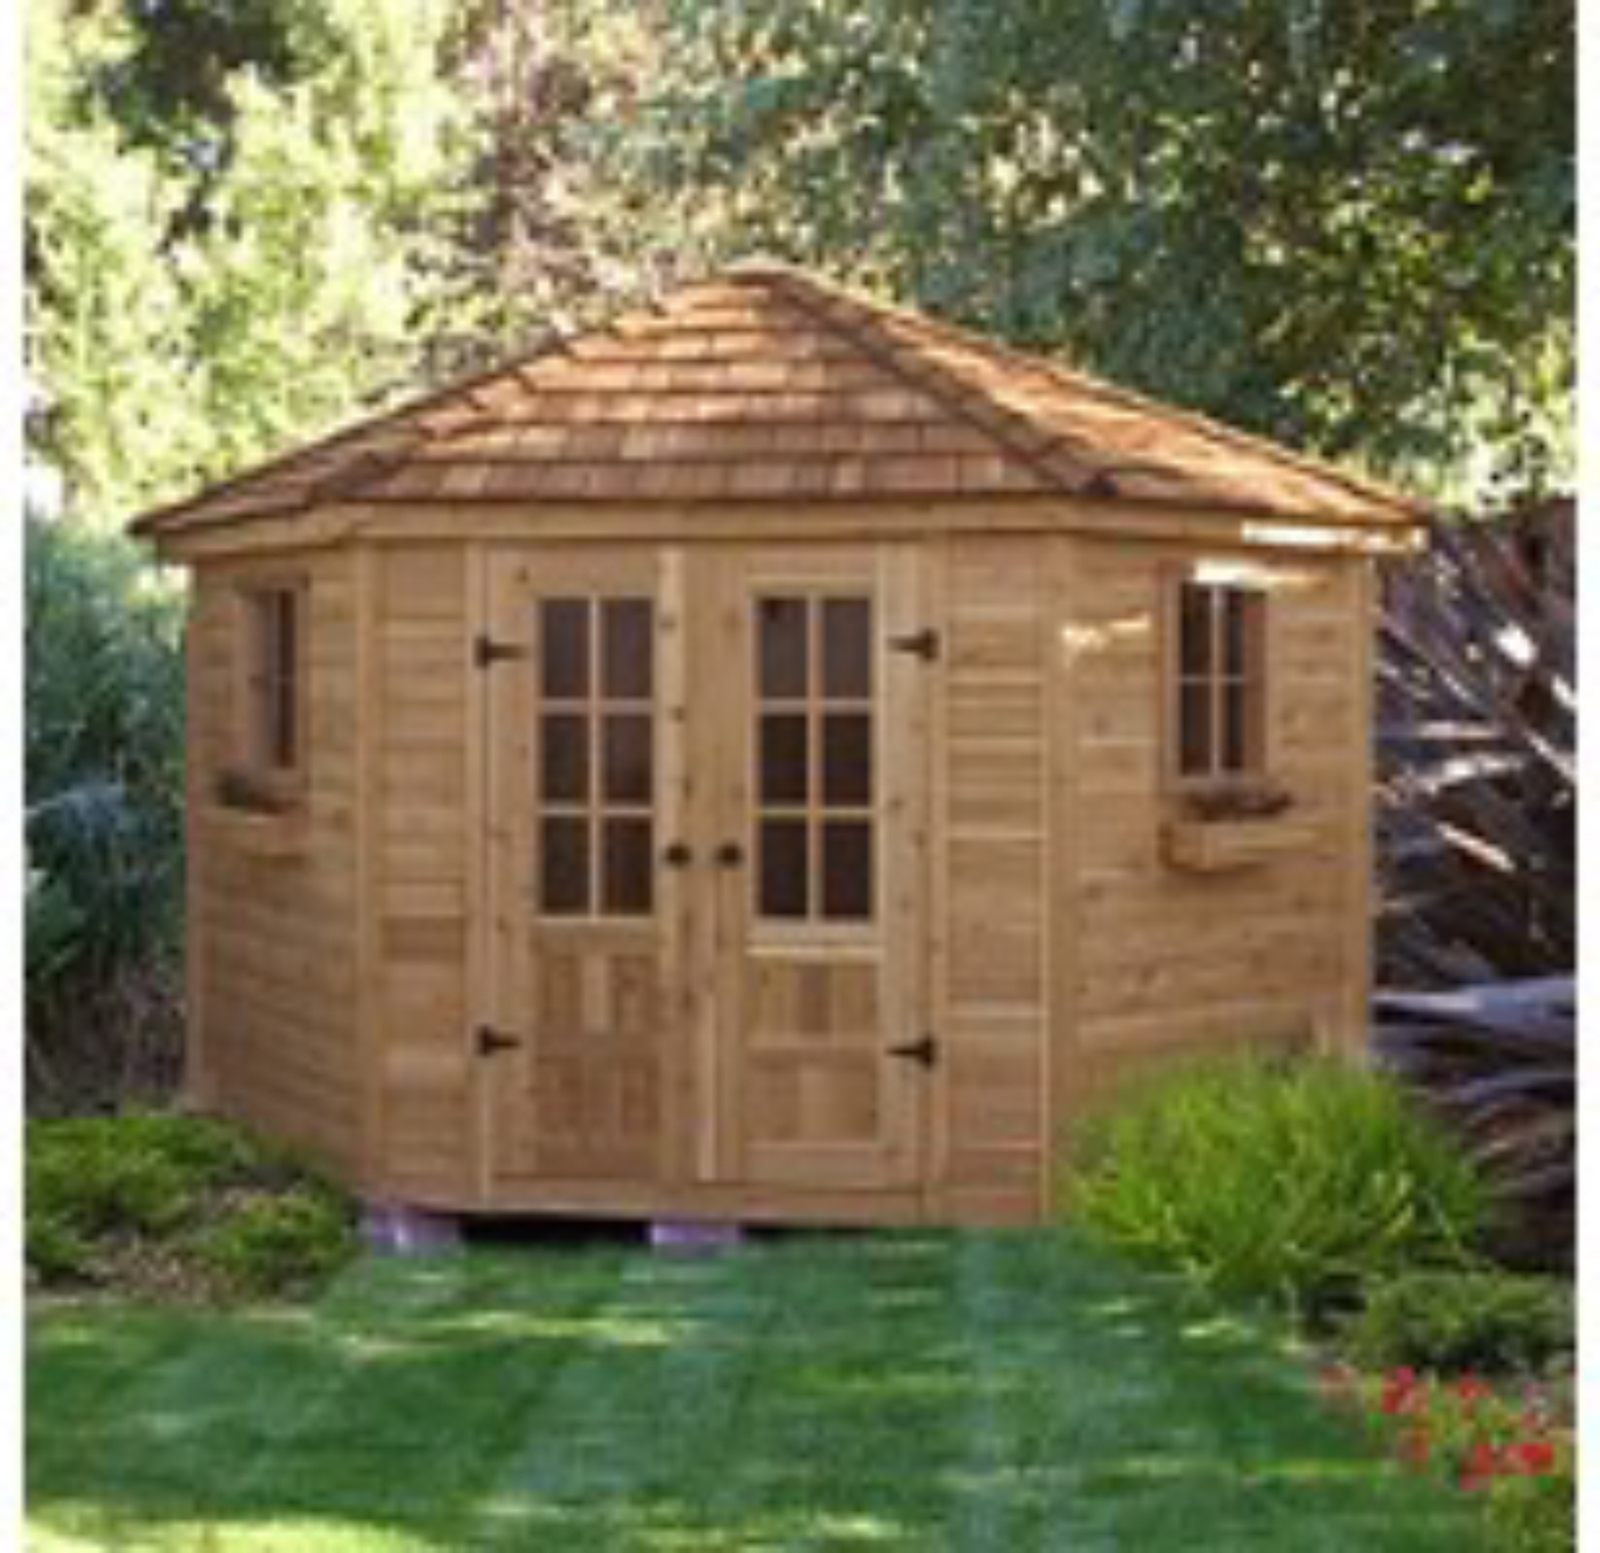 Delicieux Penthouse W/ Floor   9u0027 X 9u0027,Outdoor Storage Shed,Wood Shed.Tool Shed, New    $5,809.99